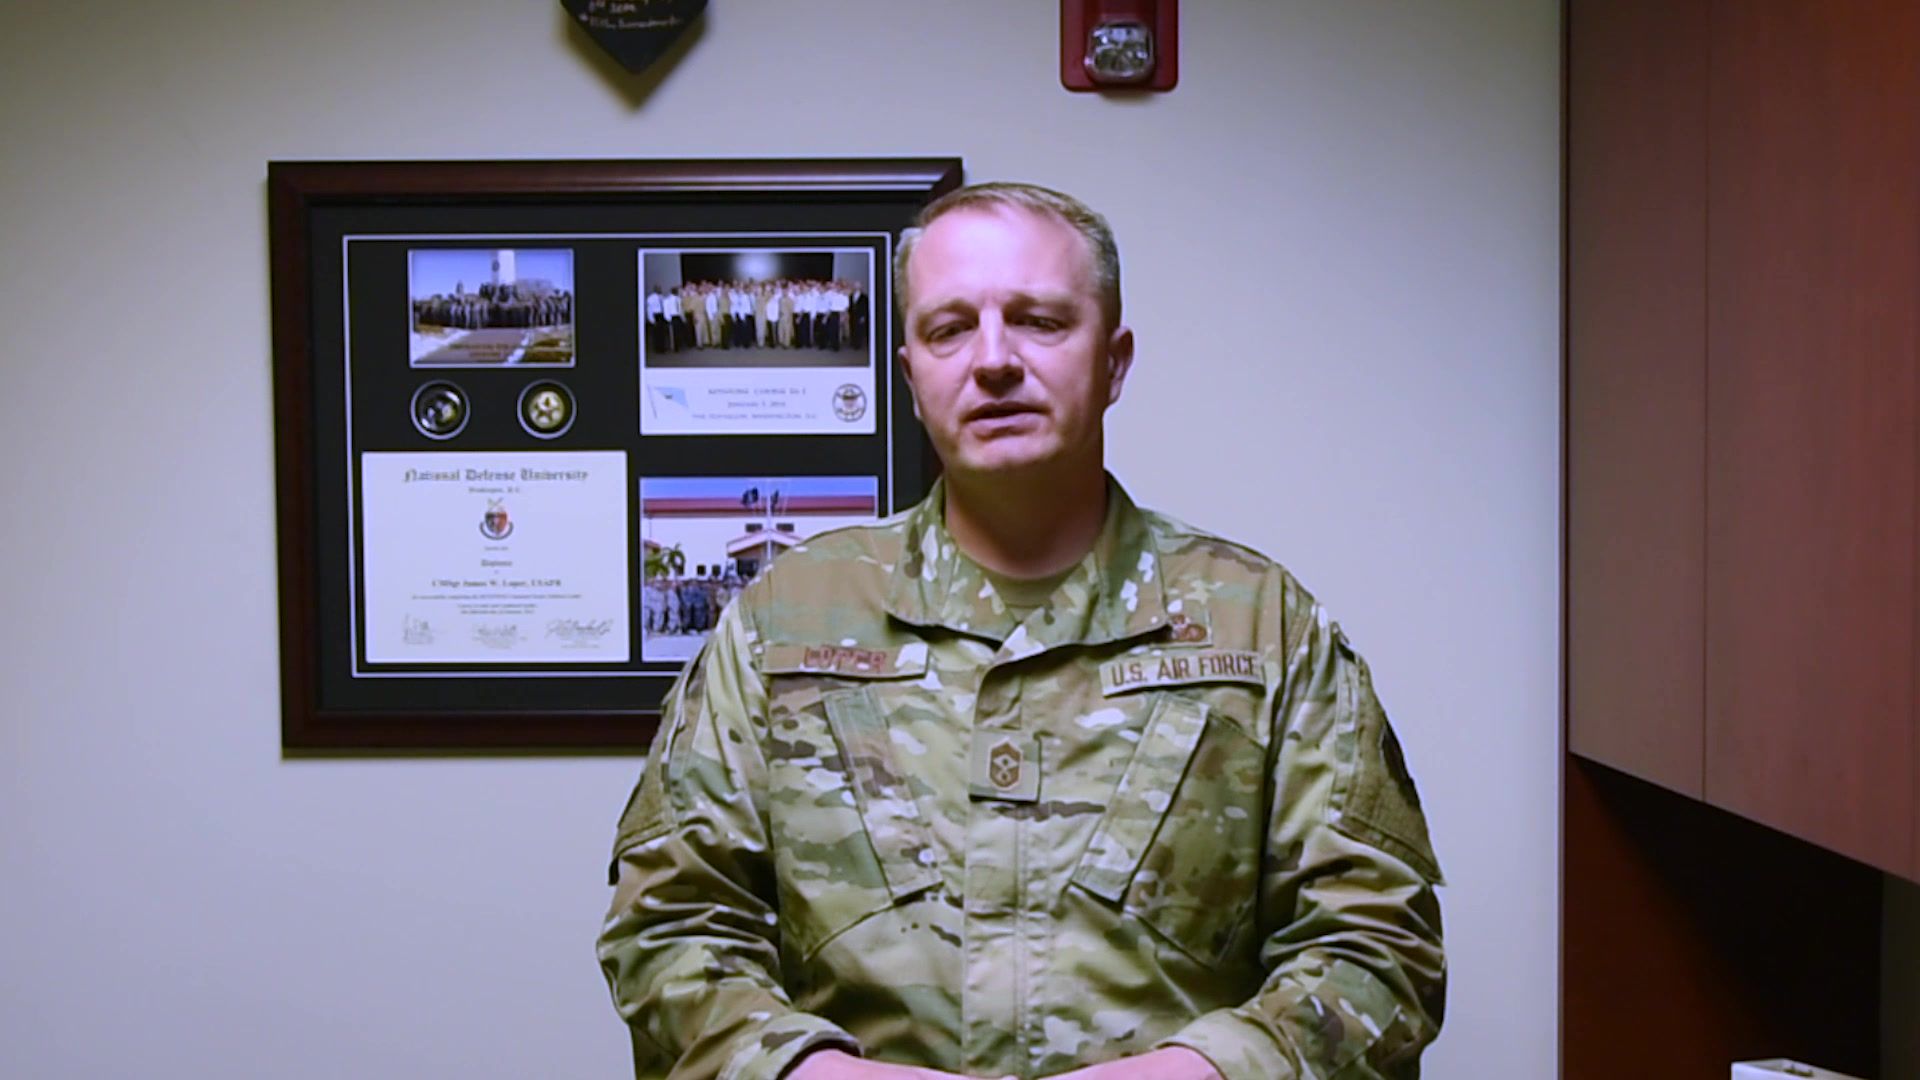 In the May Commentary, Chief Master Sgt. James Loper, 10th Air Force Command Chief, talks about suicide prevention.